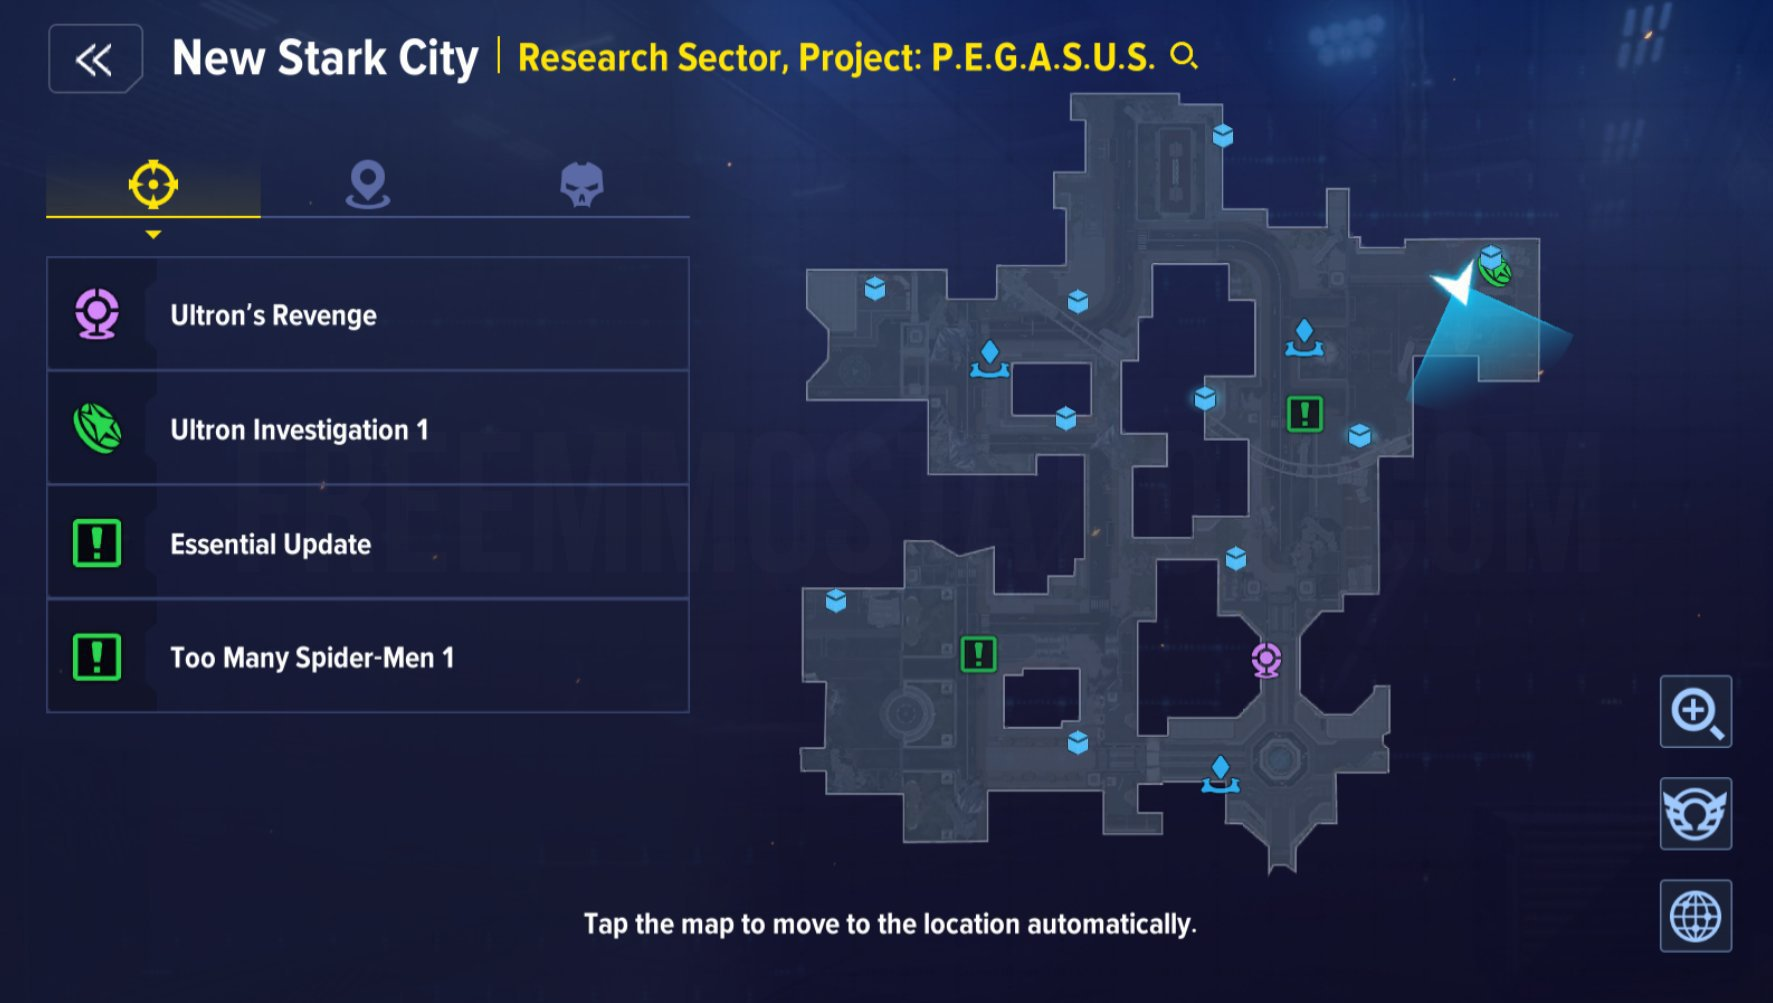 New Stark City Research Sector Project PEGASUS achievements